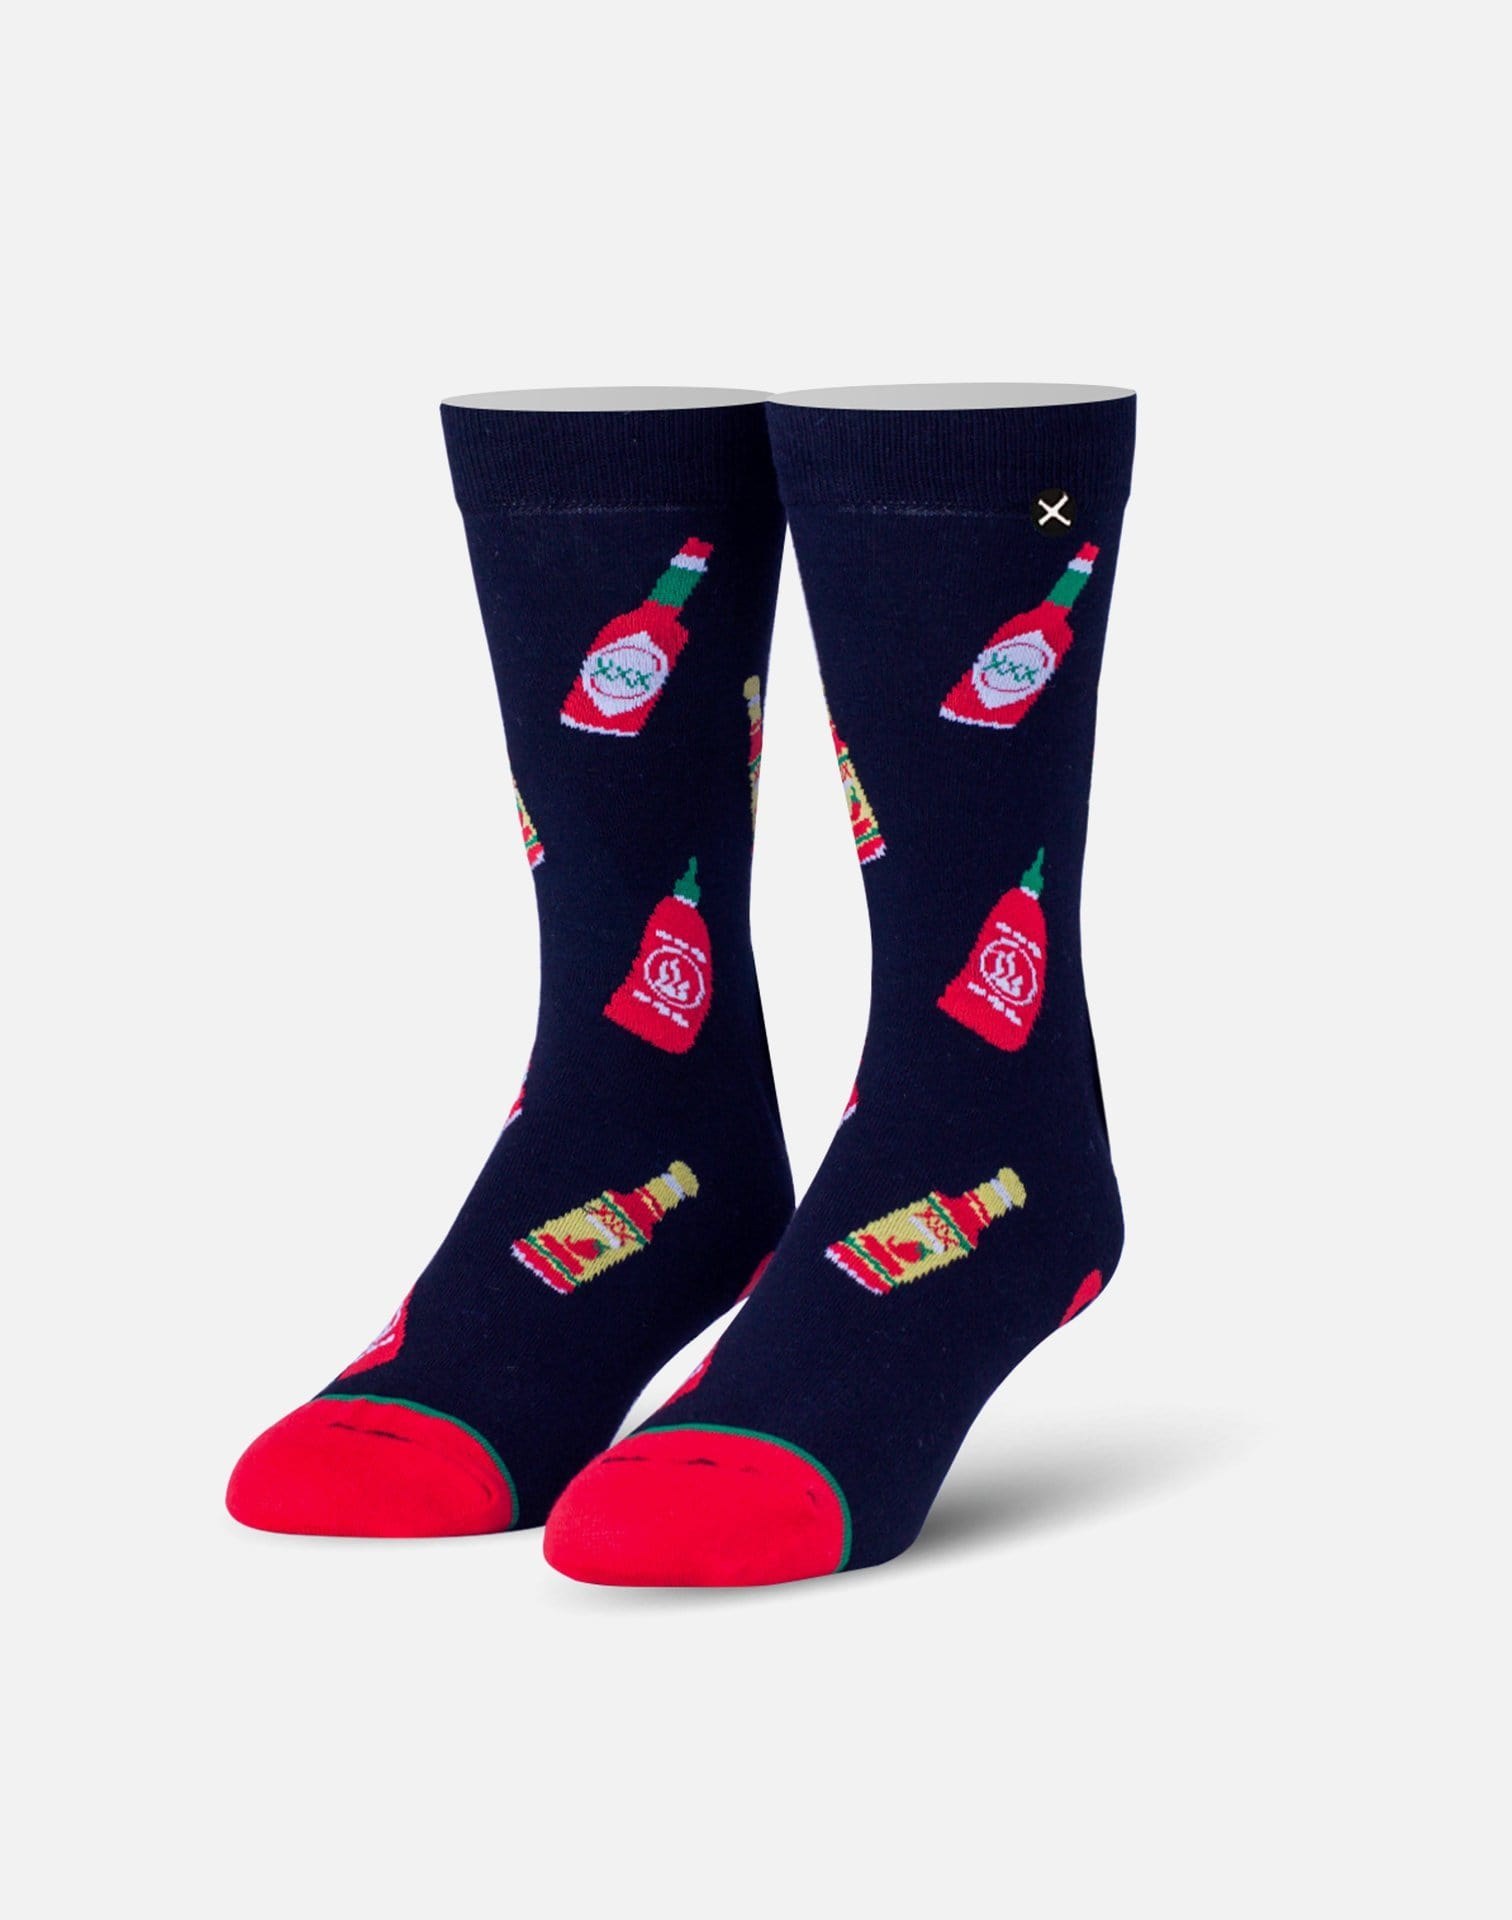 Odd Sox 'I Got The Sauce' Socks